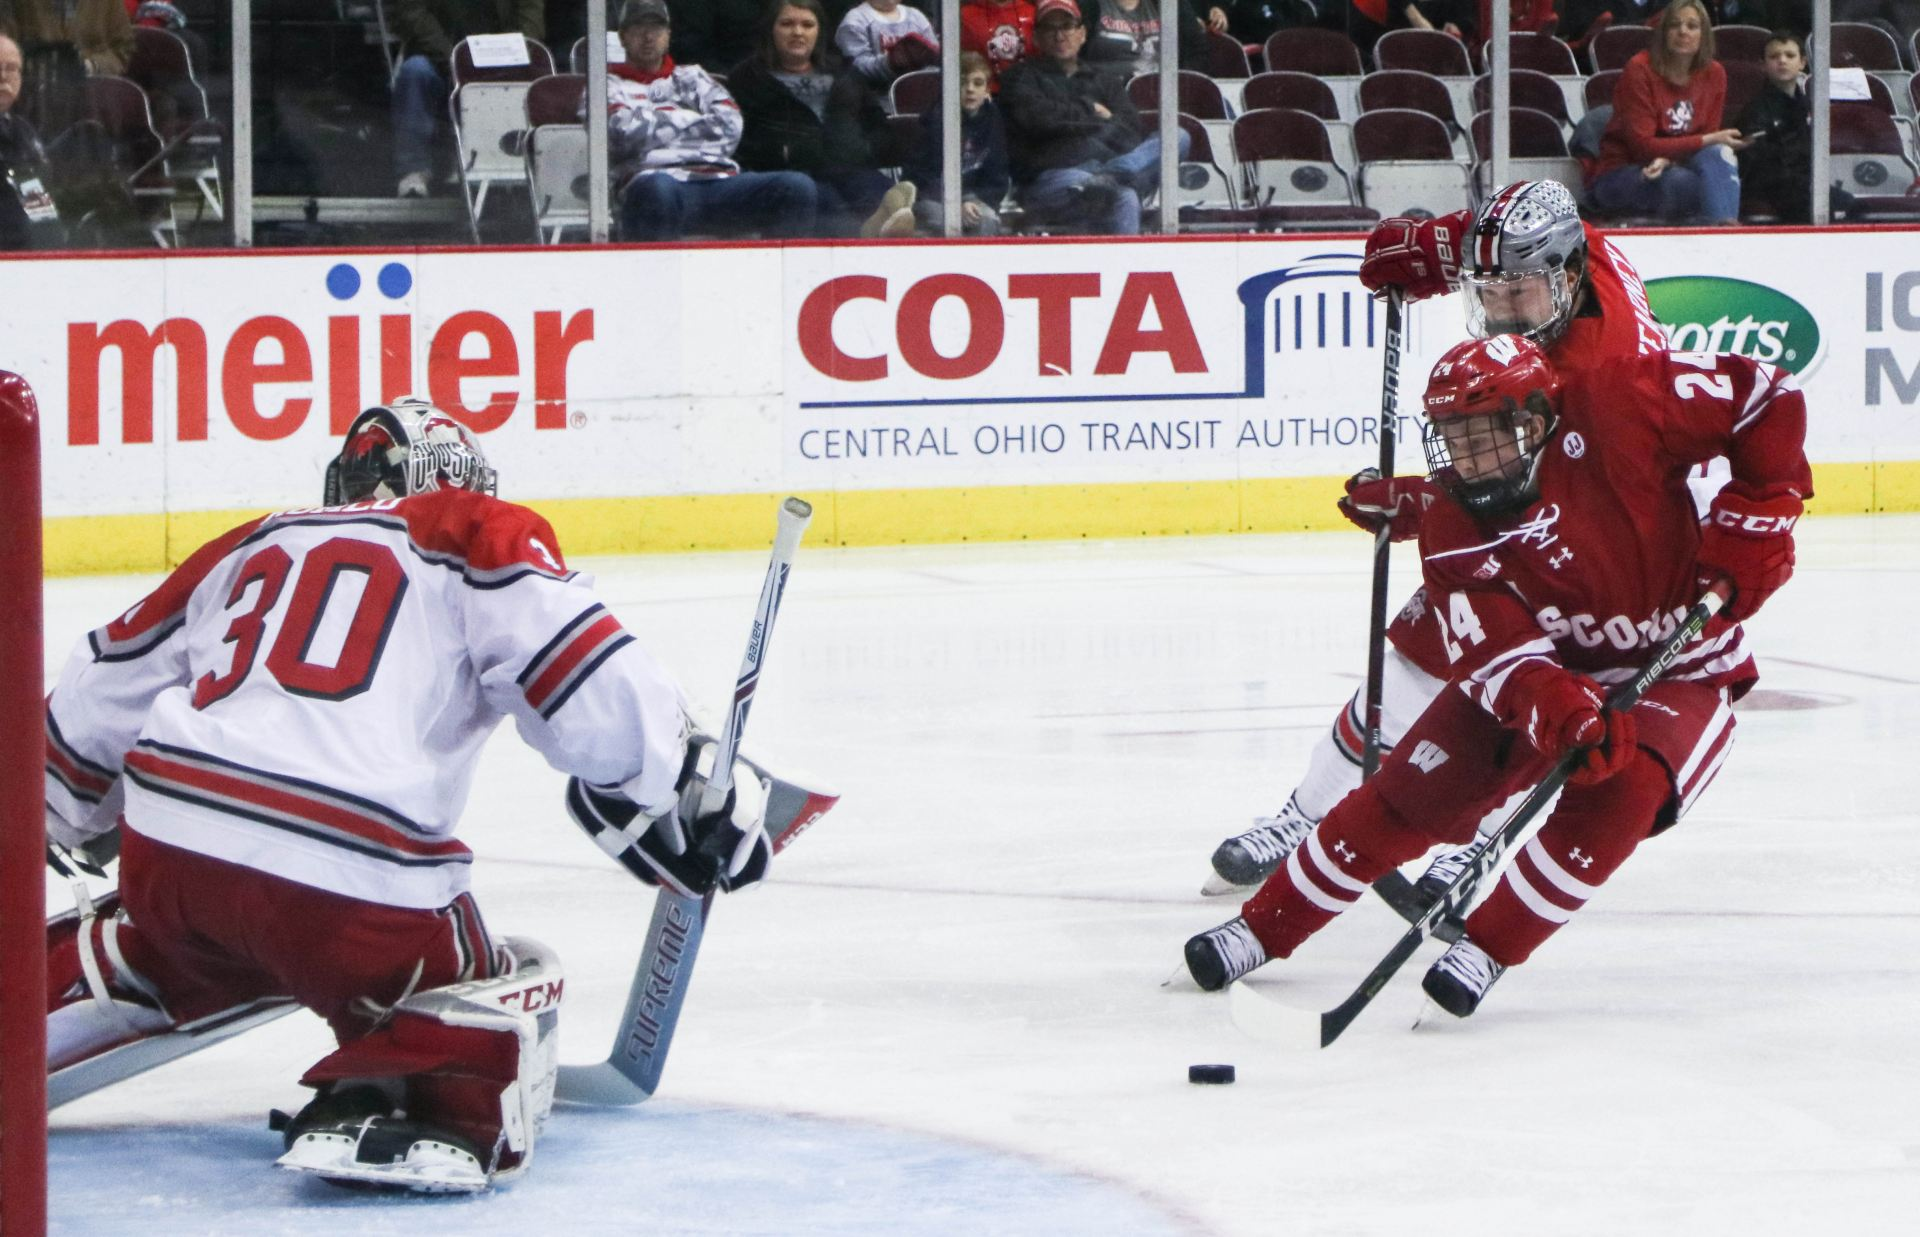 Men's hockey: Ohio State faces difficult road even as top seed to the Frozen Four remains difficult